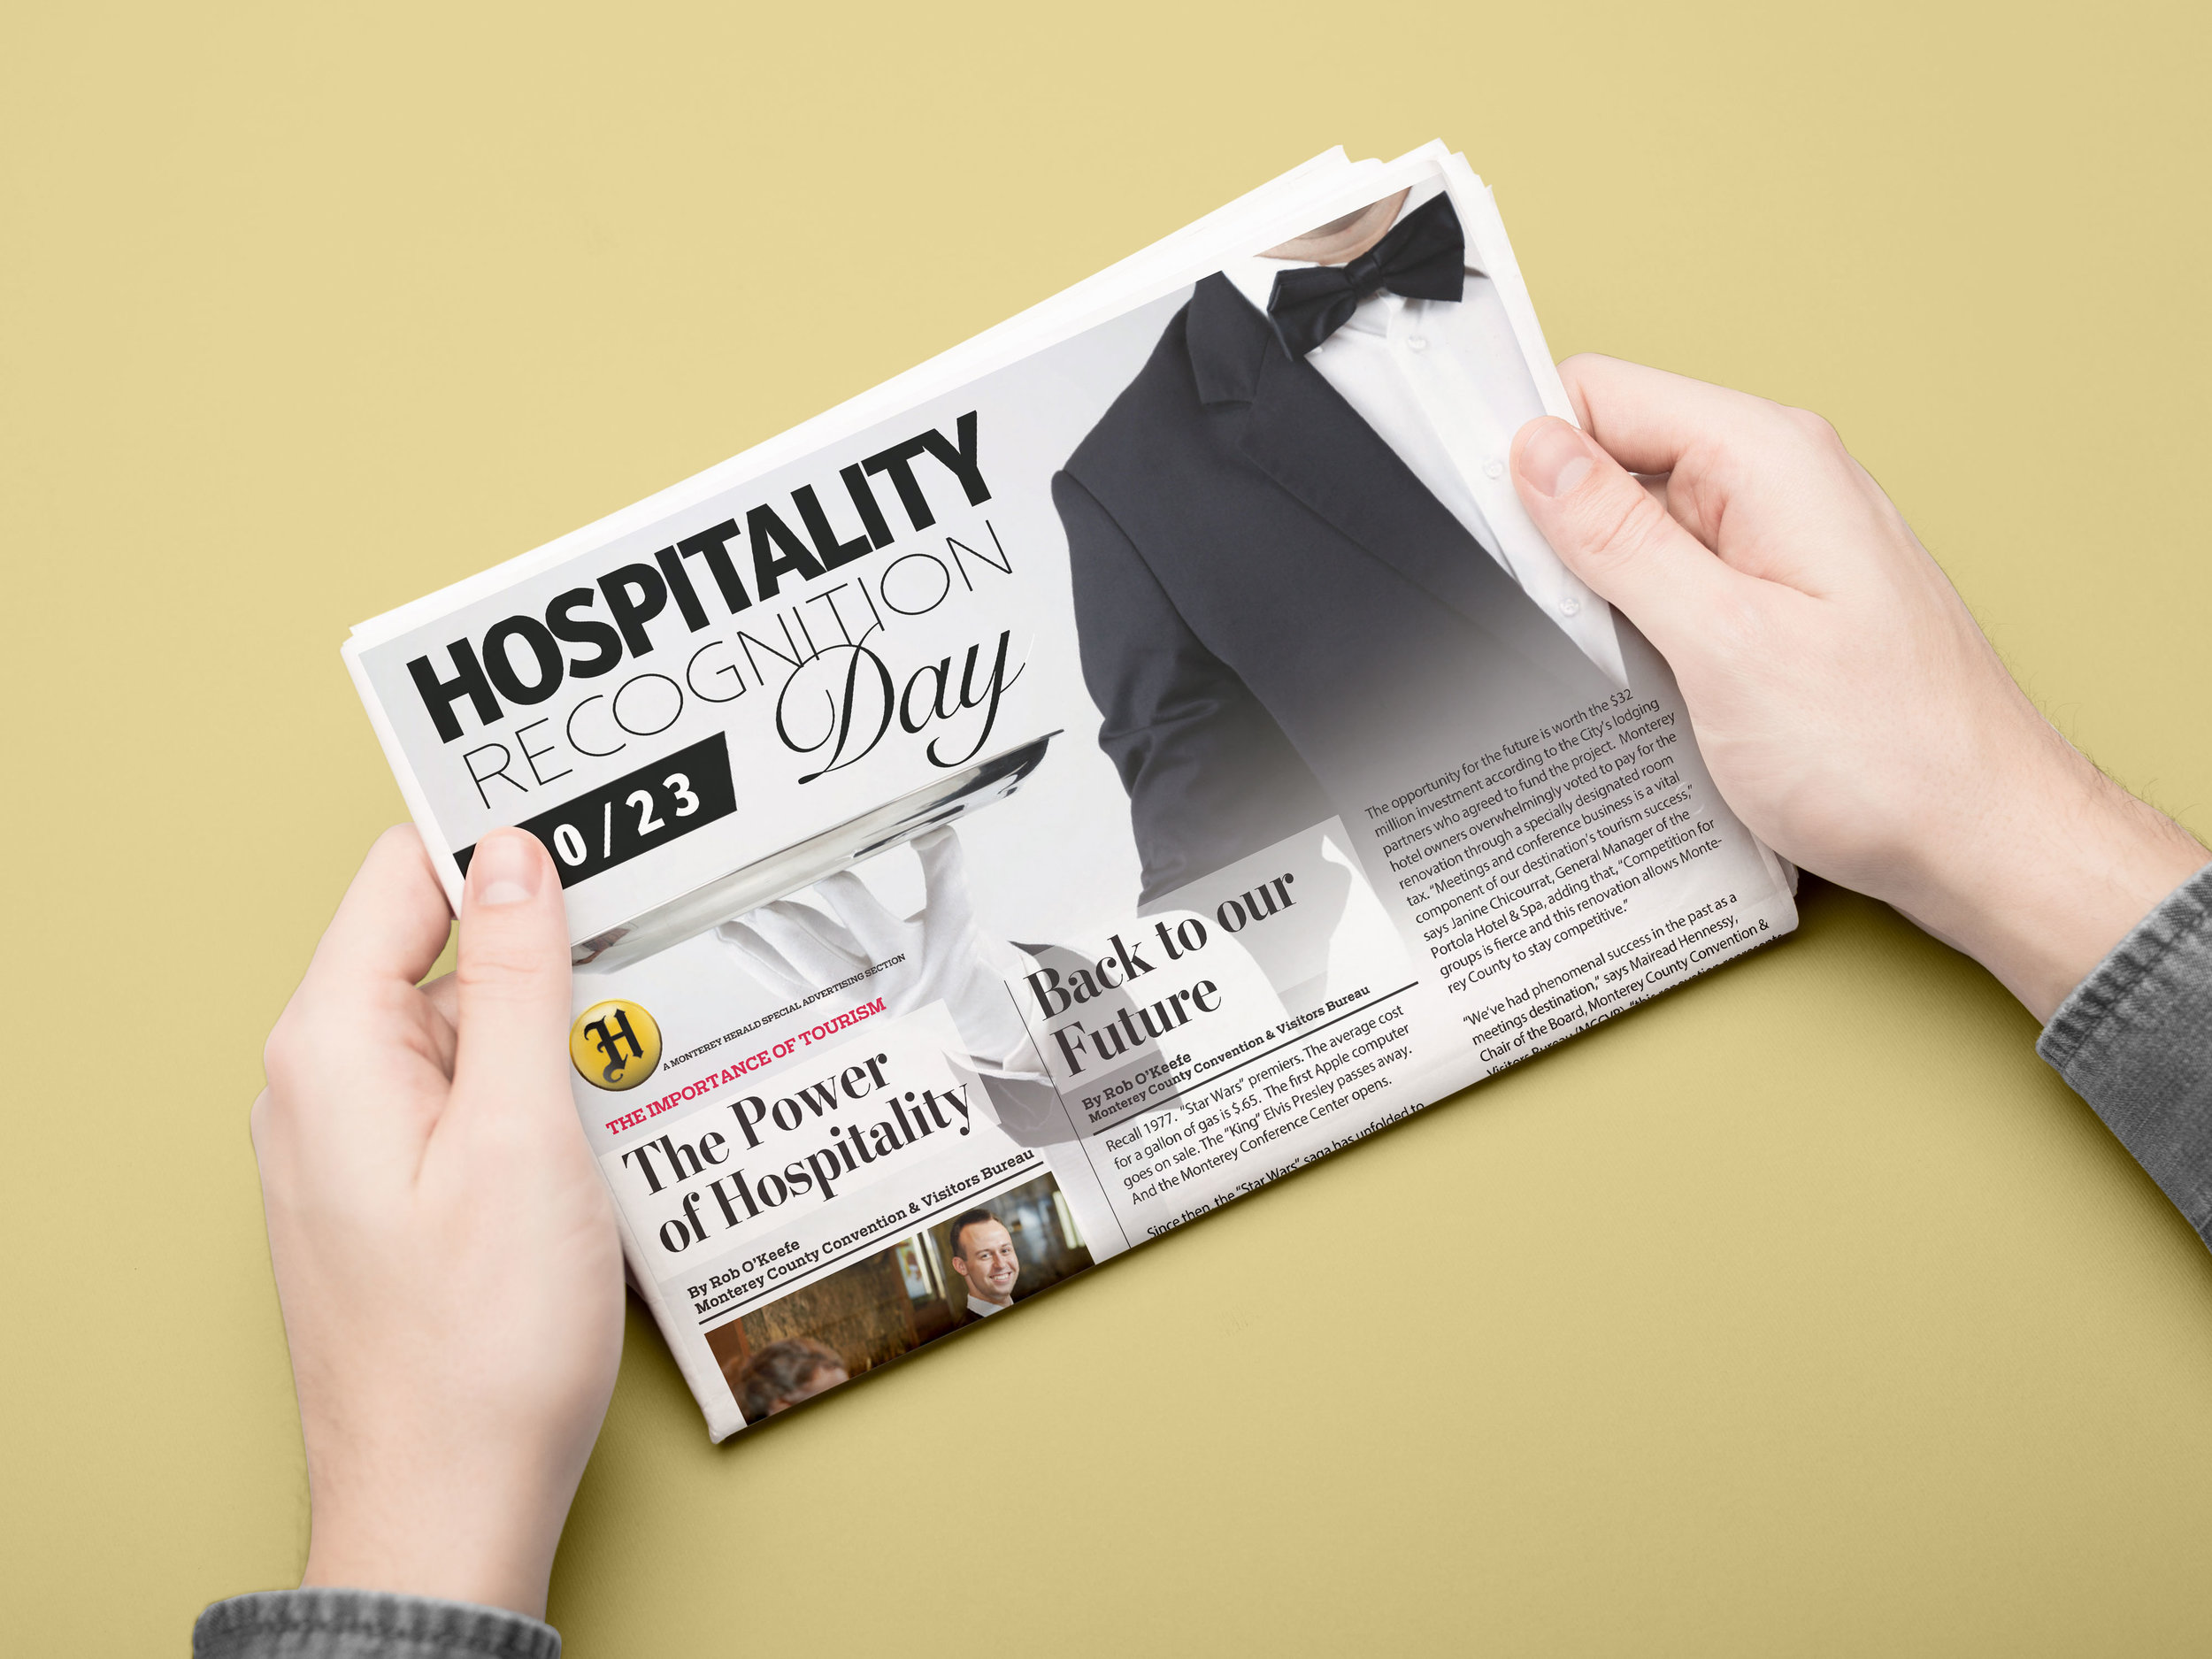 Hospitality Recognition Day 2014